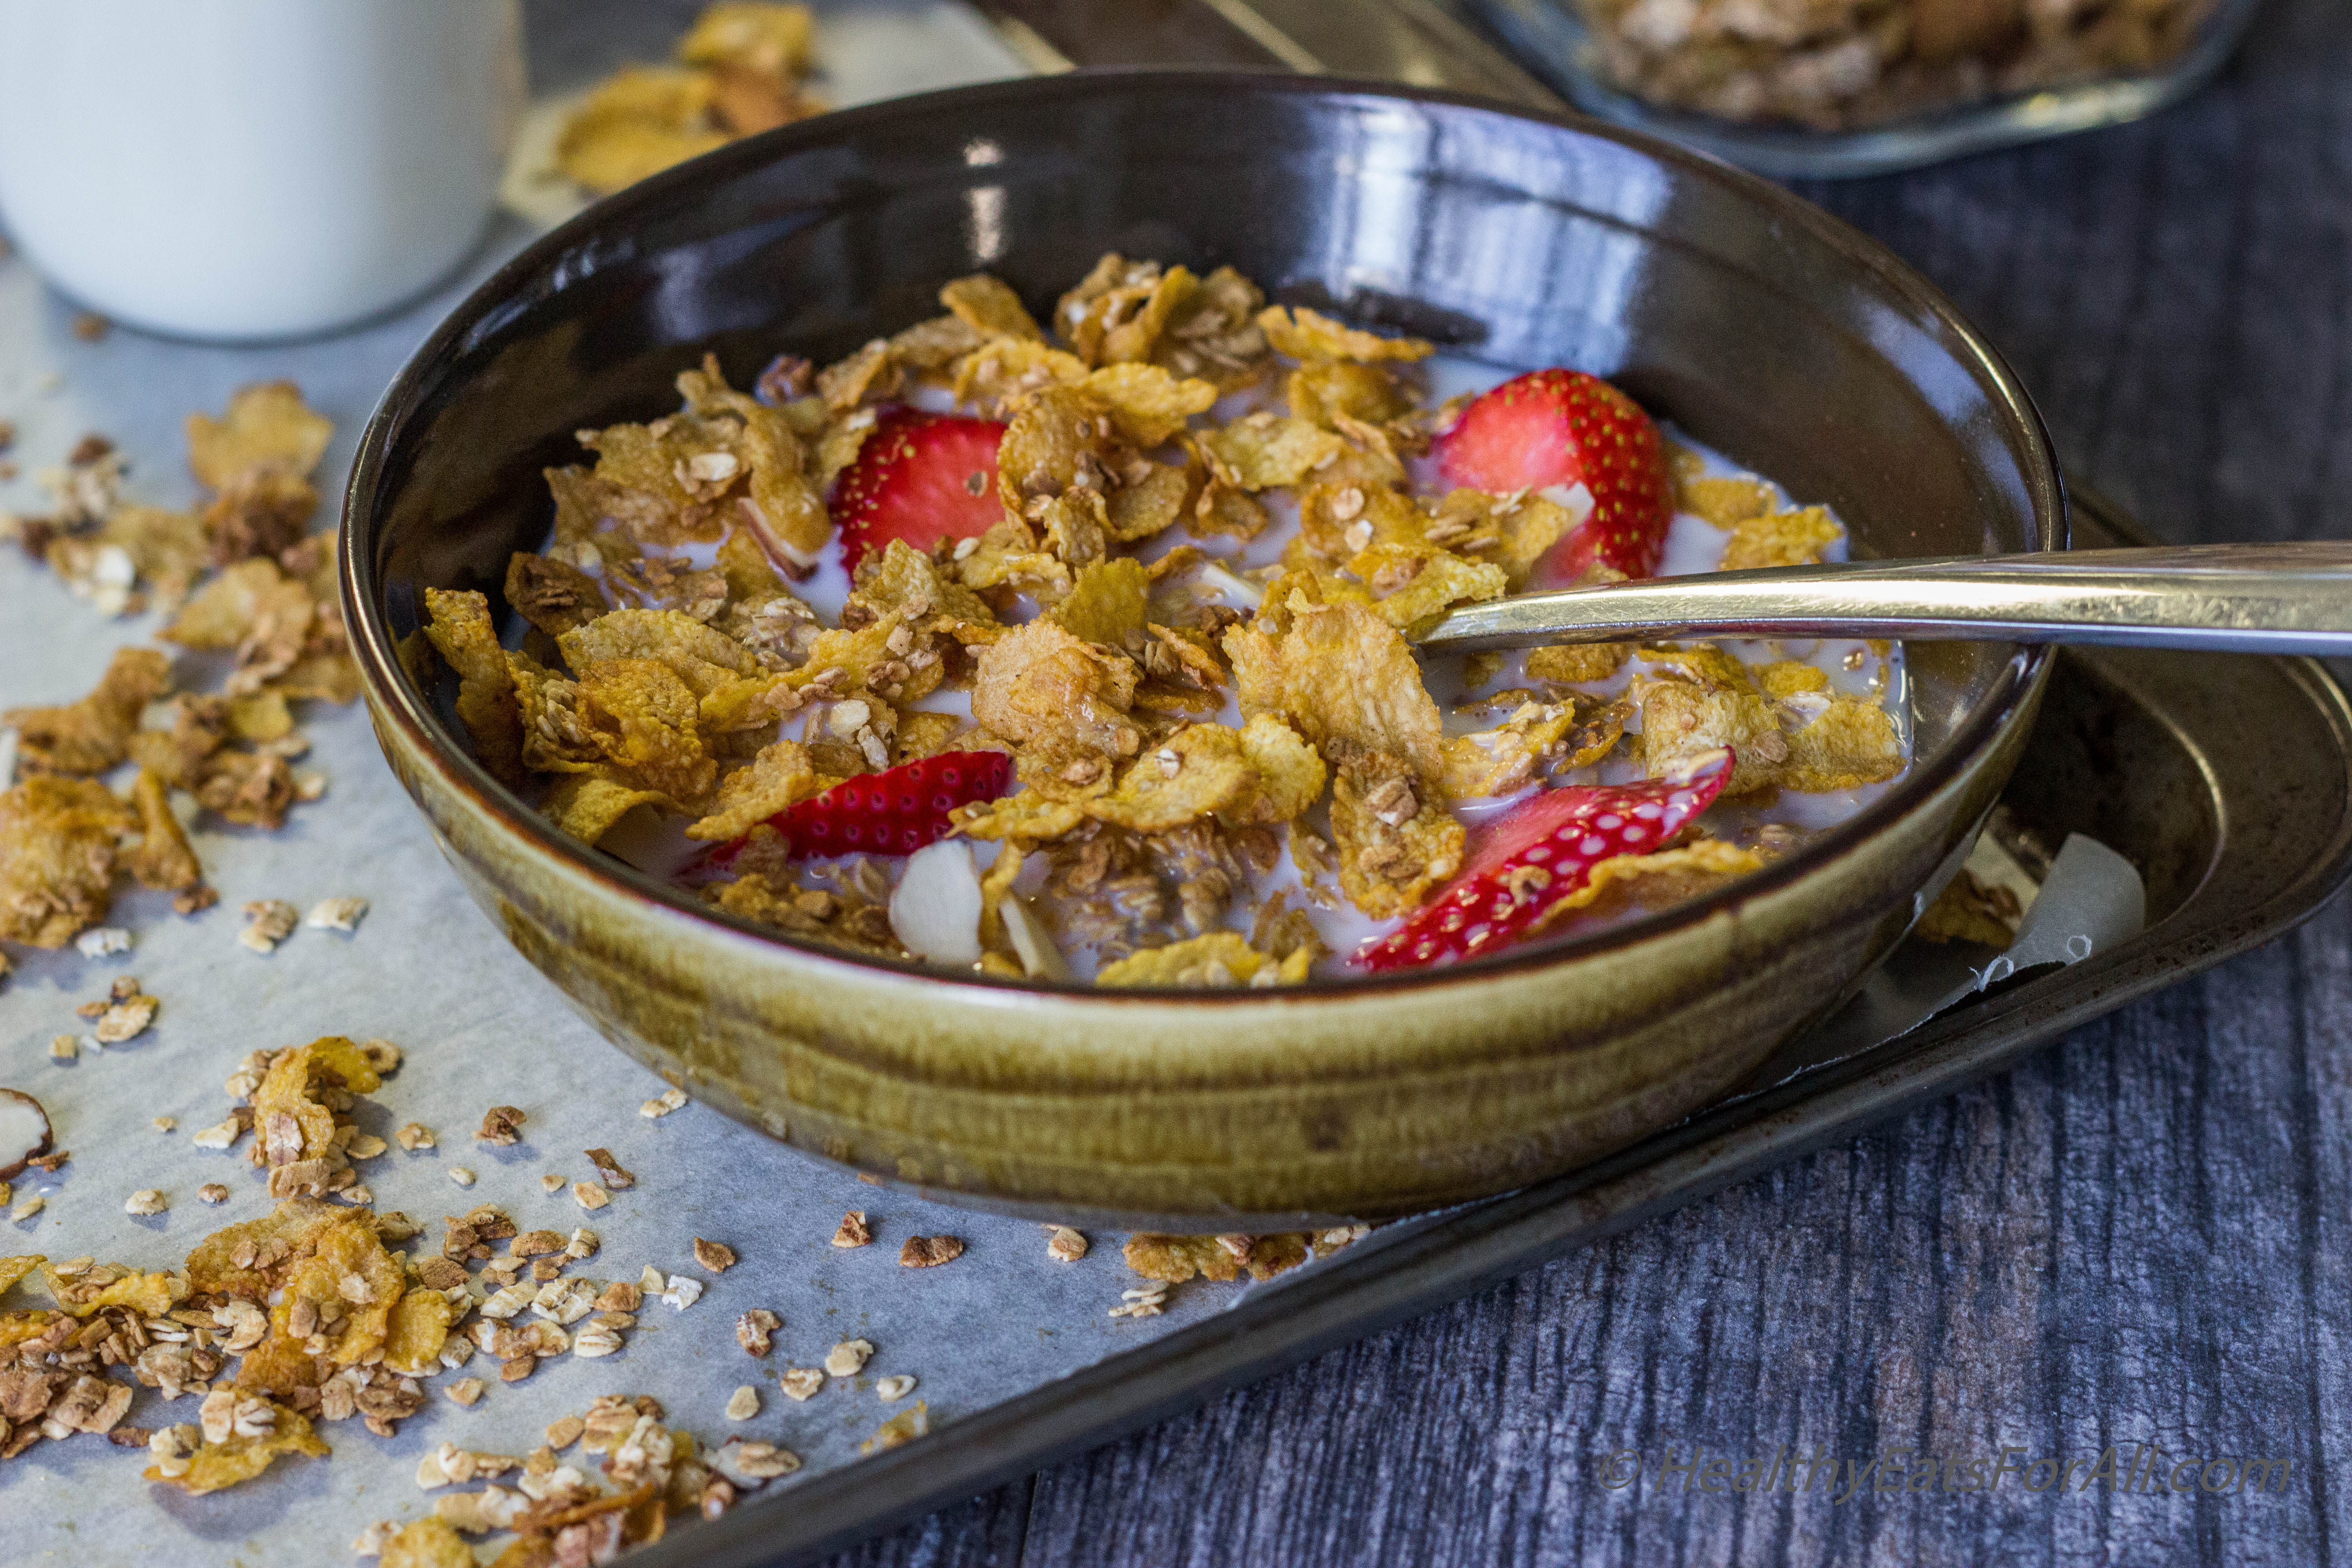 Homemade honey bunches of oats cereal healthy eats for all honey bunches of oats cereal 4 ccuart Choice Image